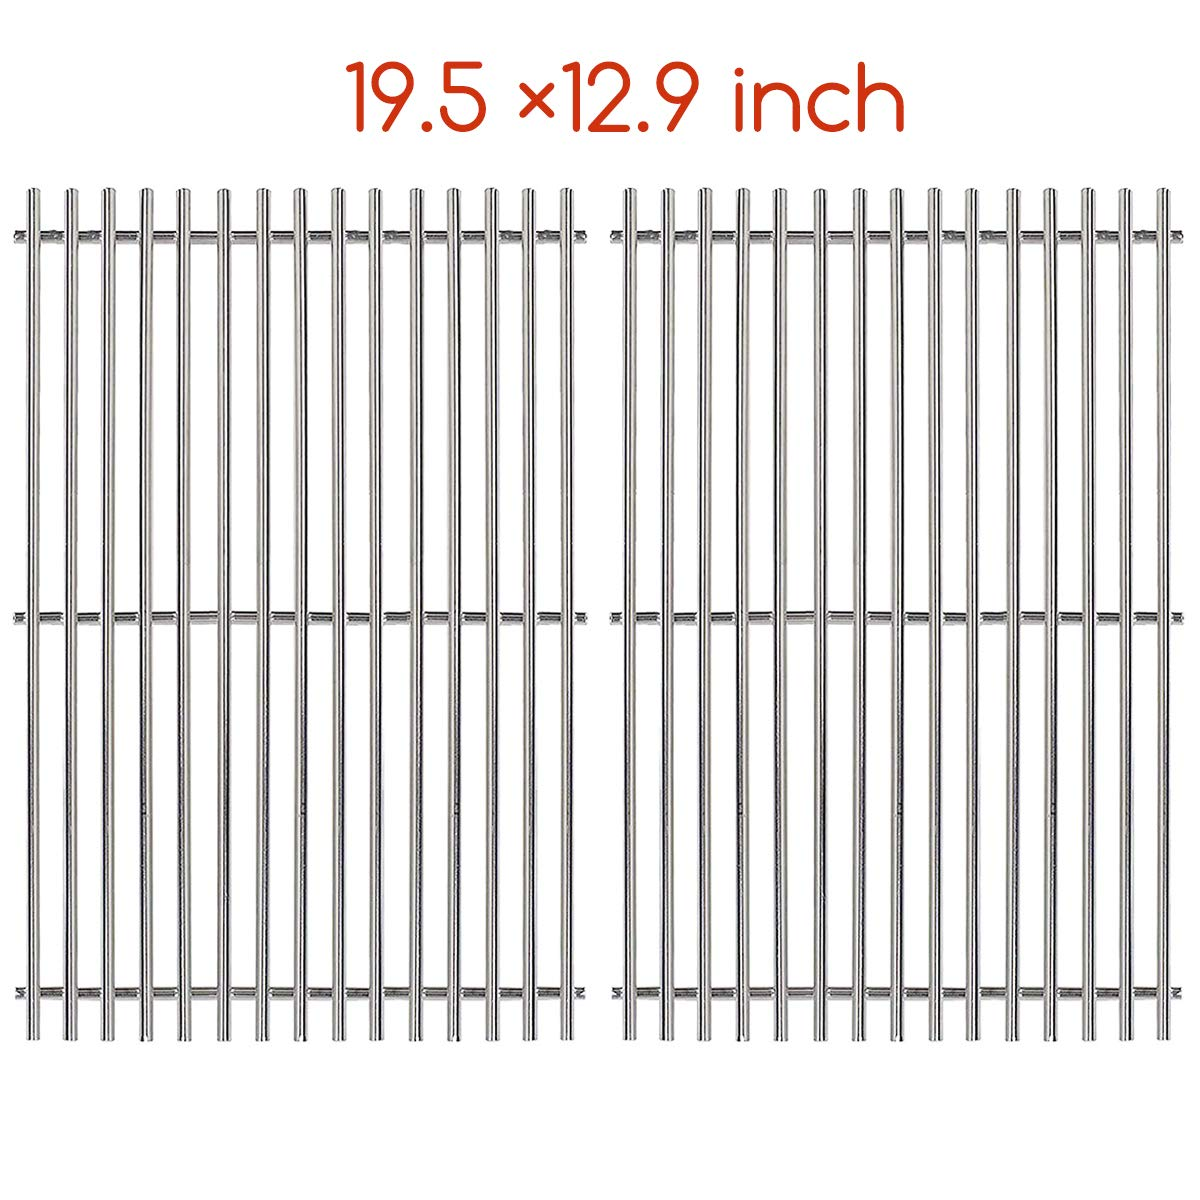 Hisencn 7528 Stainless Steel Cooking Grid Grate (19.5 x 12.9 inch) for Weber Genesis E and S Series